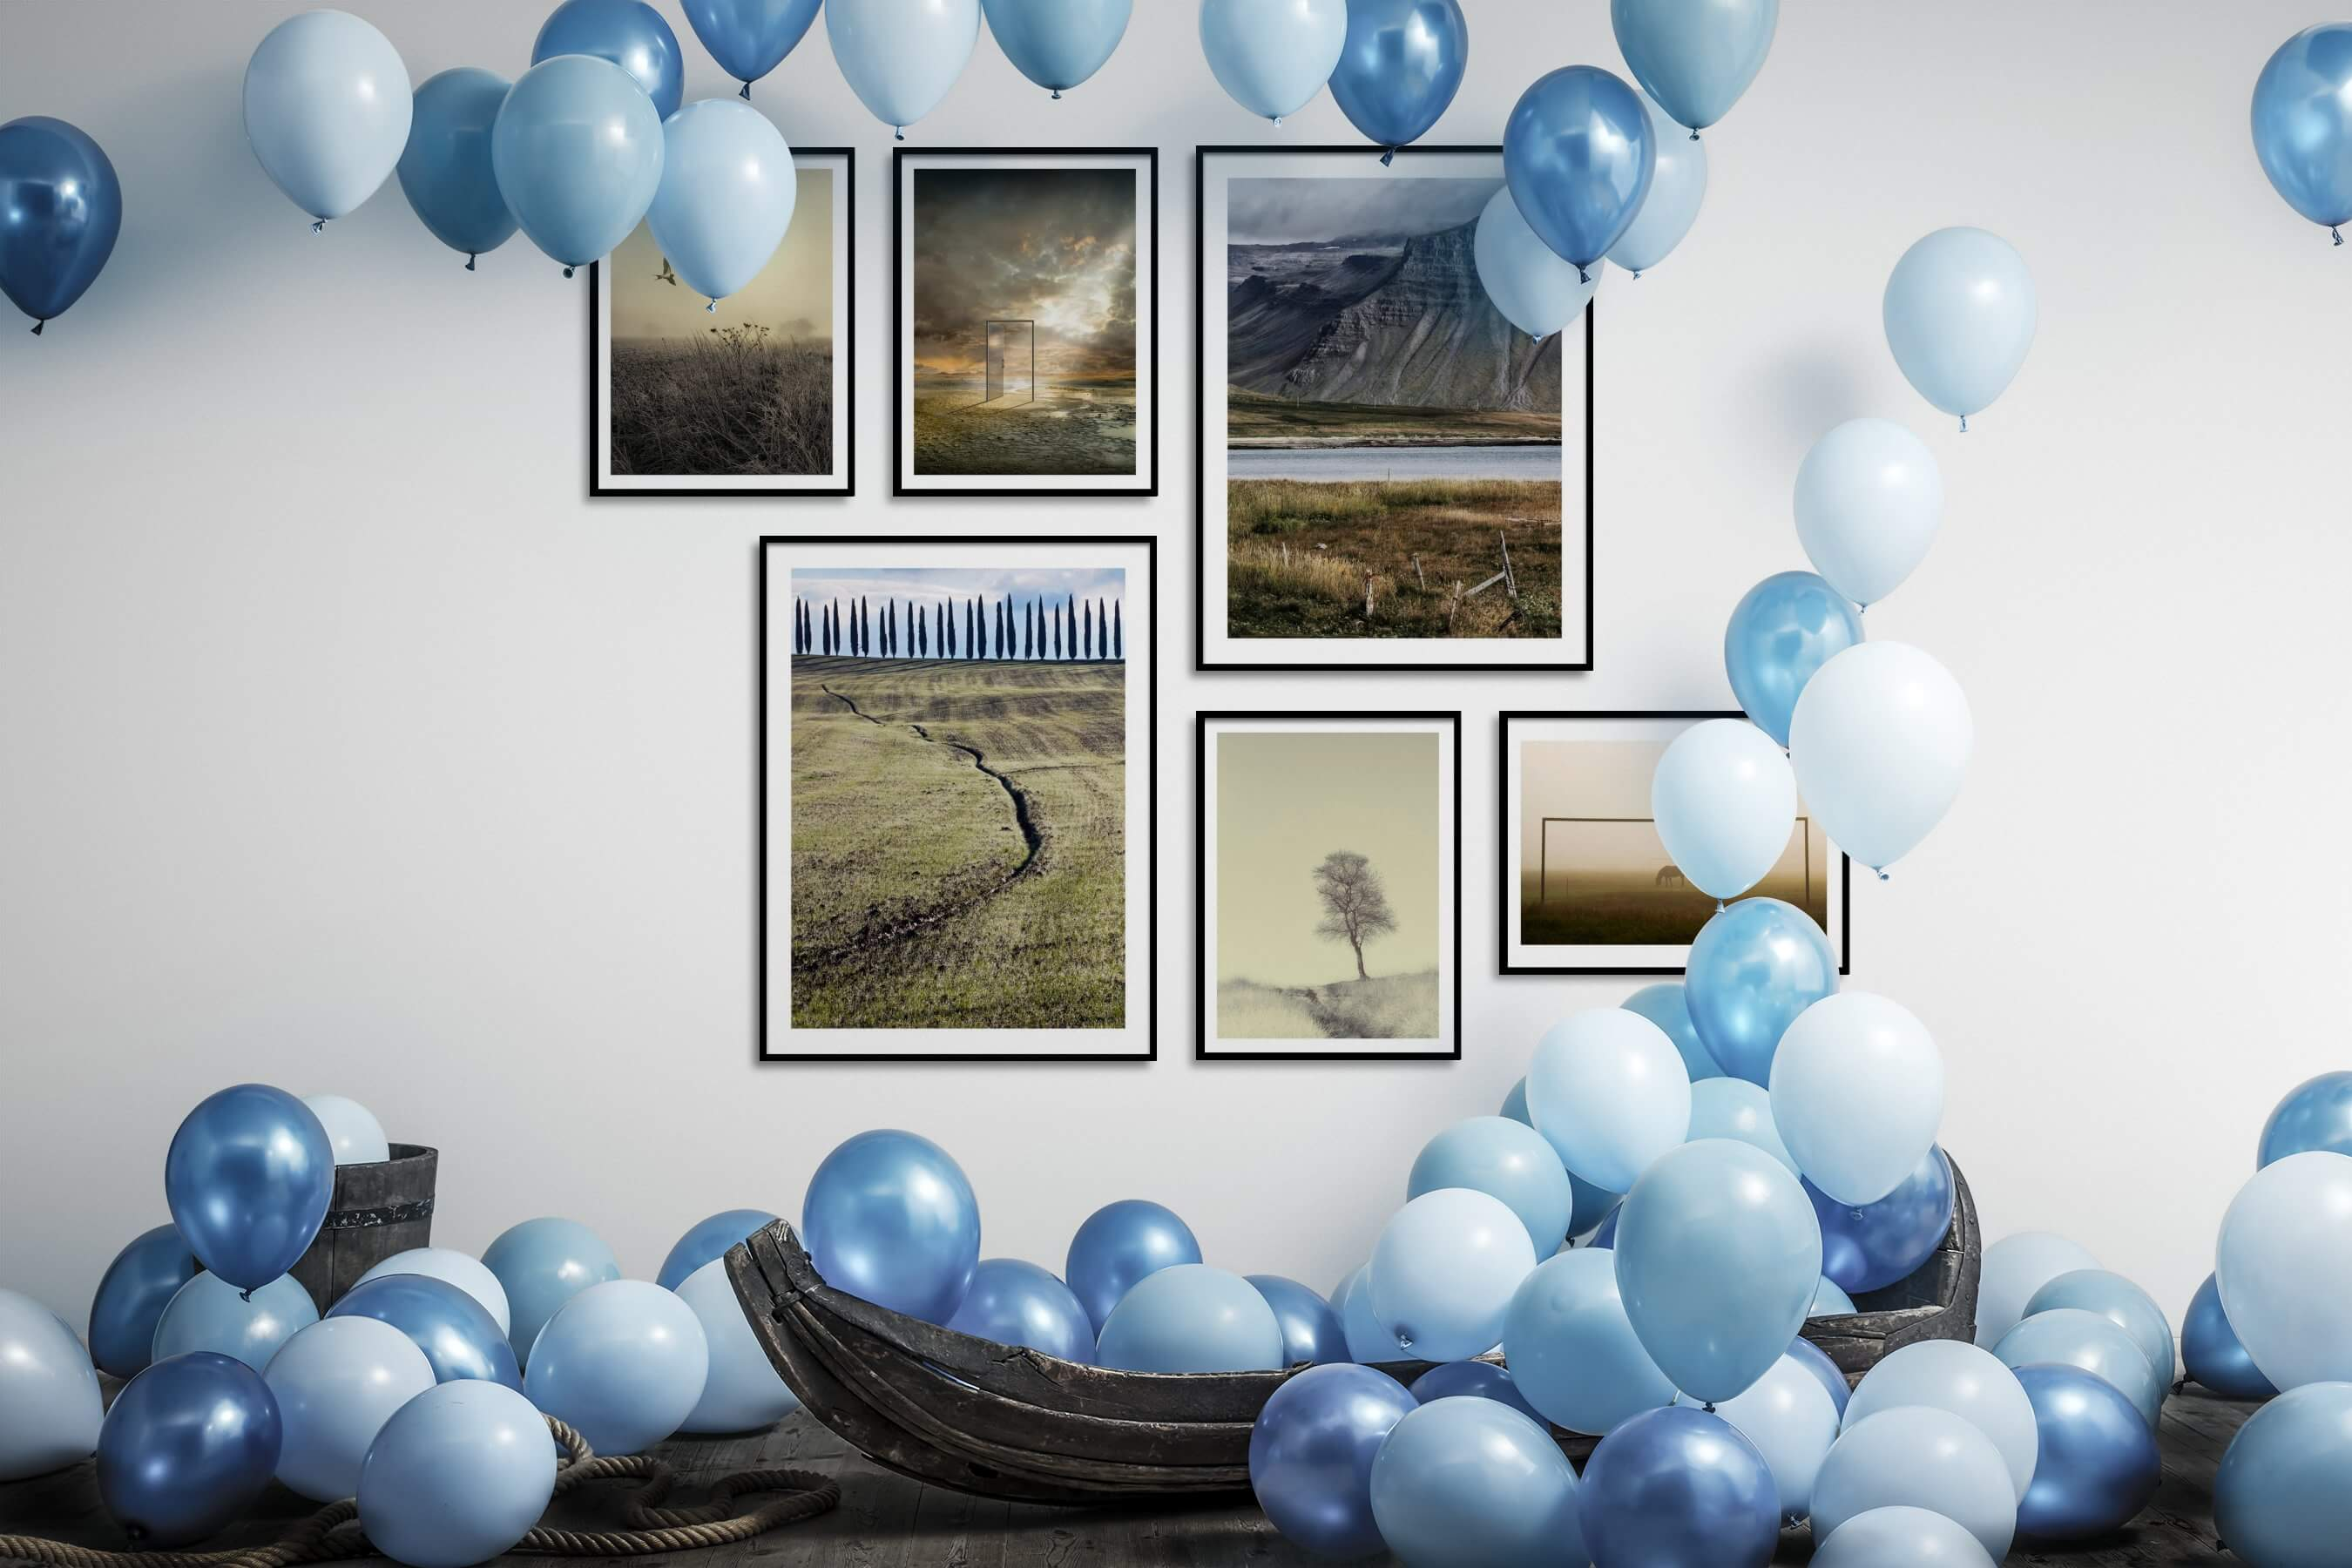 Gallery wall idea with six framed pictures arranged on a wall depicting For the Moderate, Country Life, Mindfulness, Artsy, For the Minimalist, and Animals